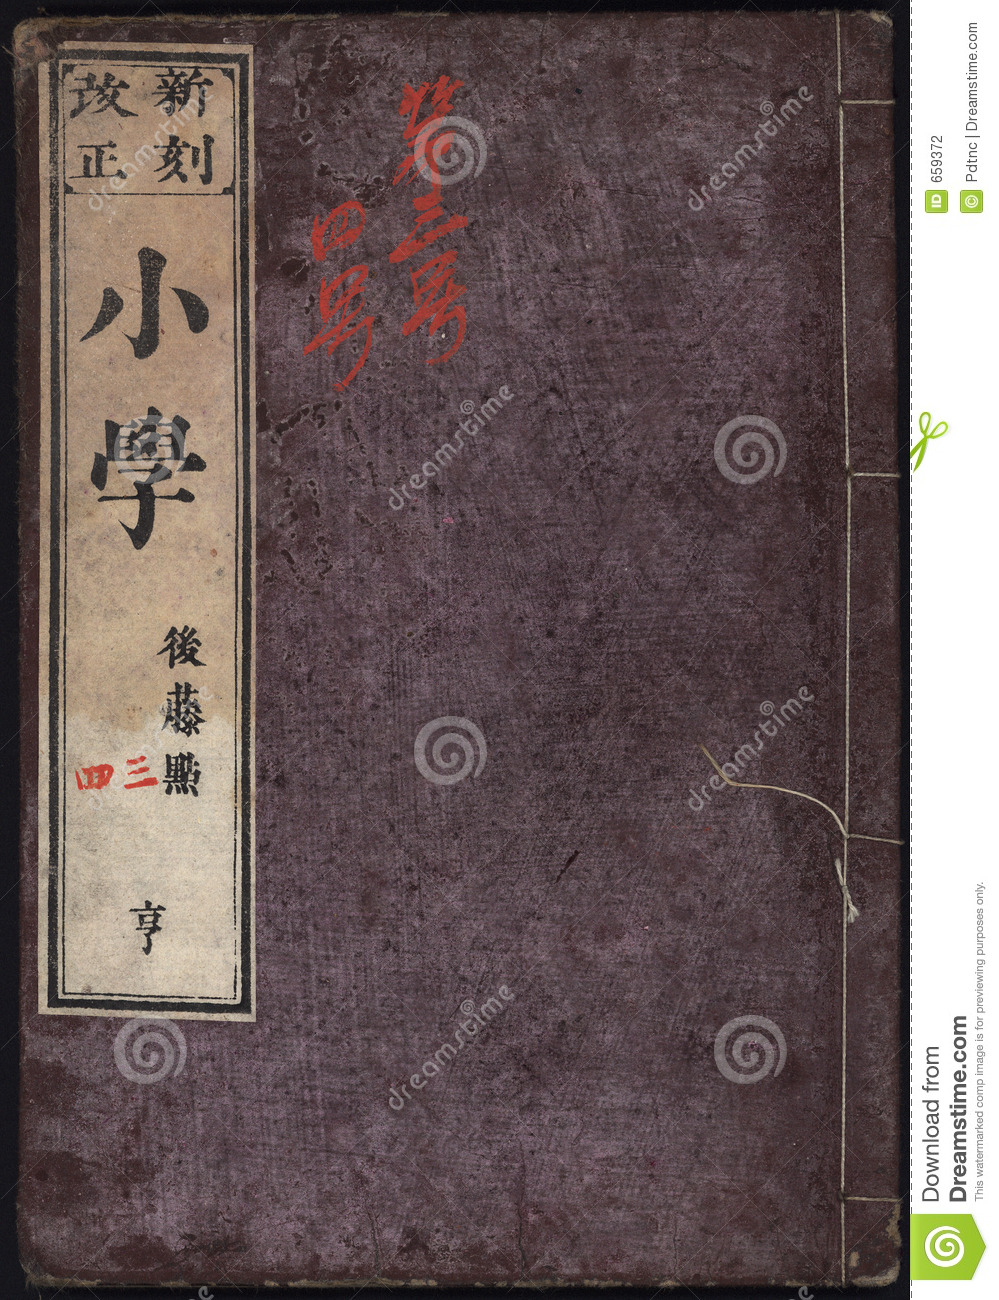 Japanese Book Front Cover stock photo Image of texture  659372